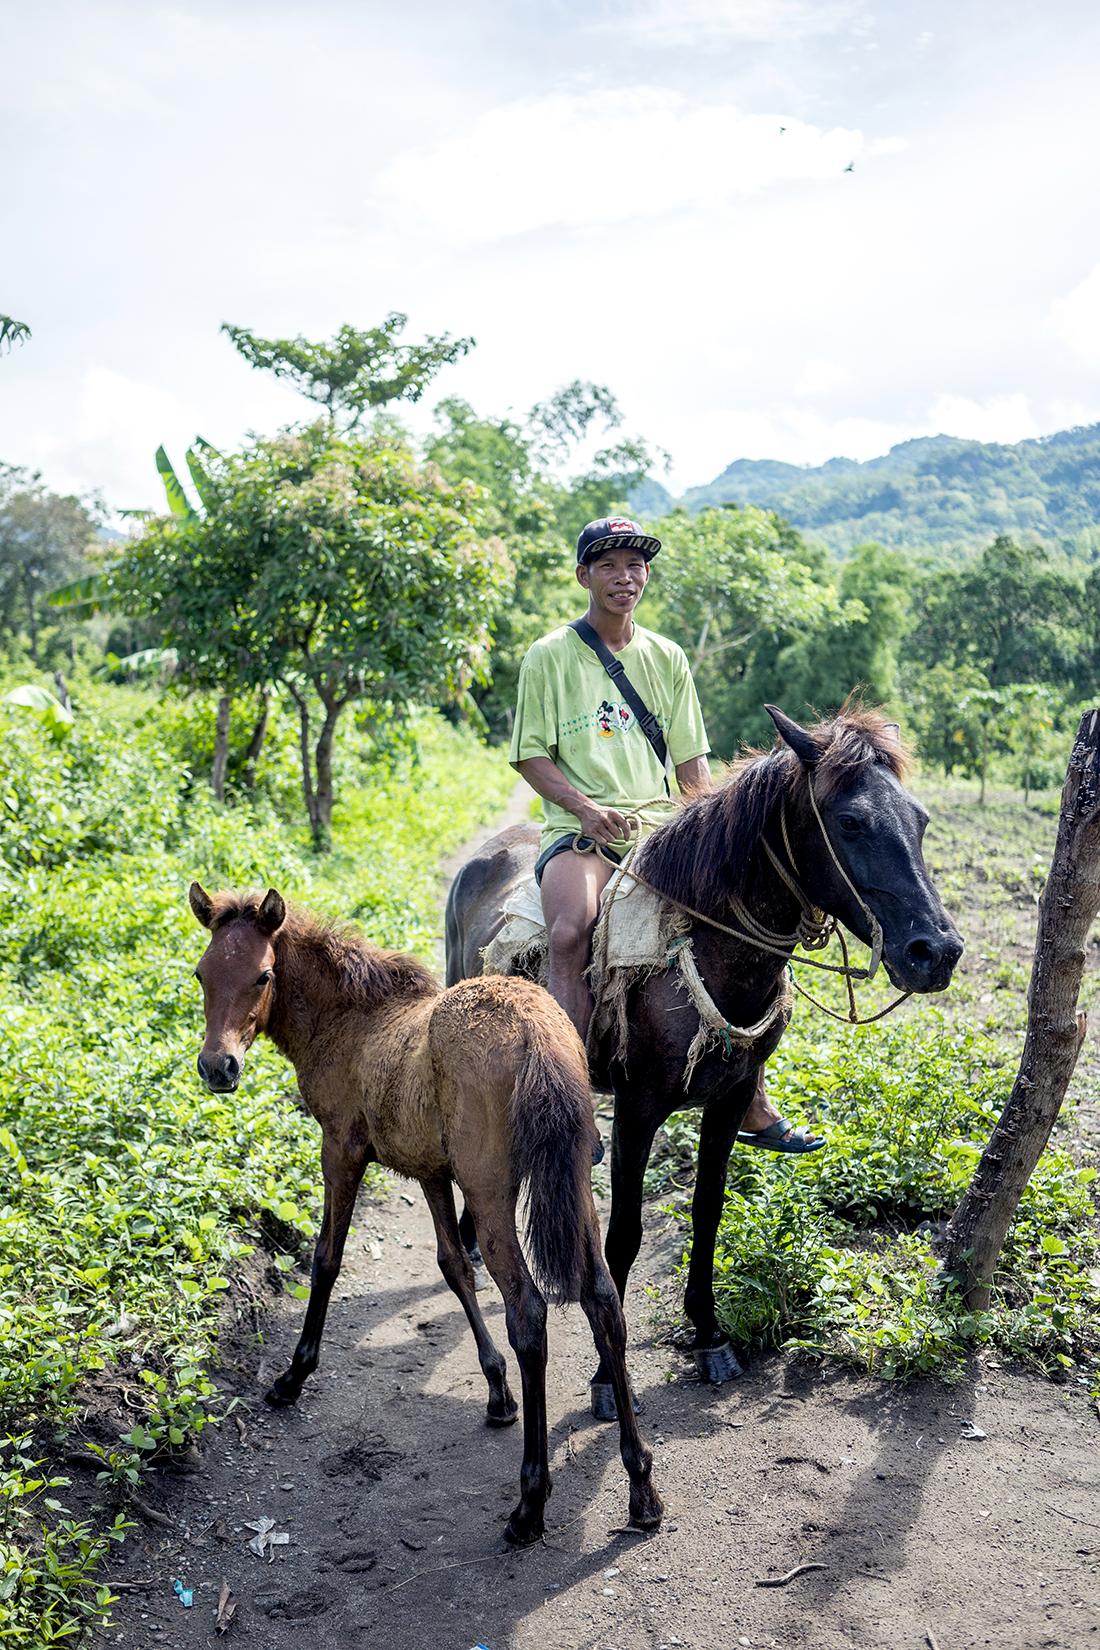 En route to Sitio Salidang on horseback